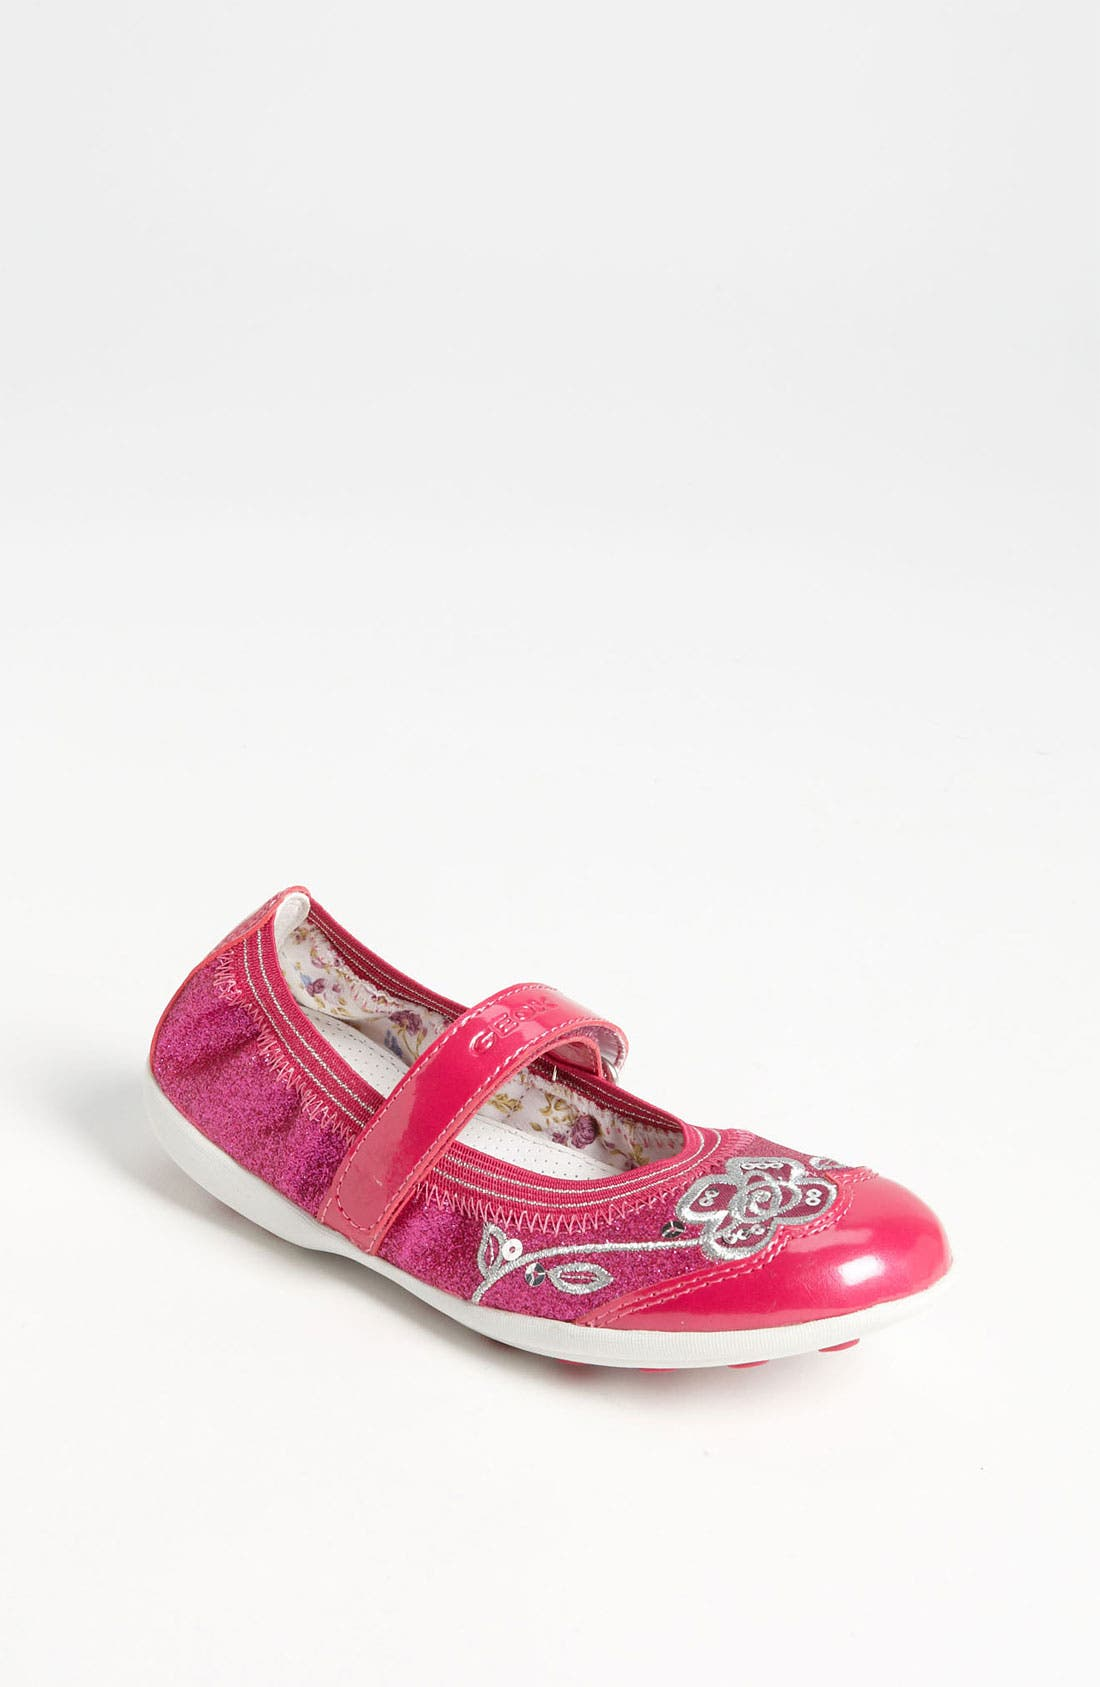 Main Image - Geox Junior 'Jodie' Mary Jane Sneaker (Toddler & Little Kid)